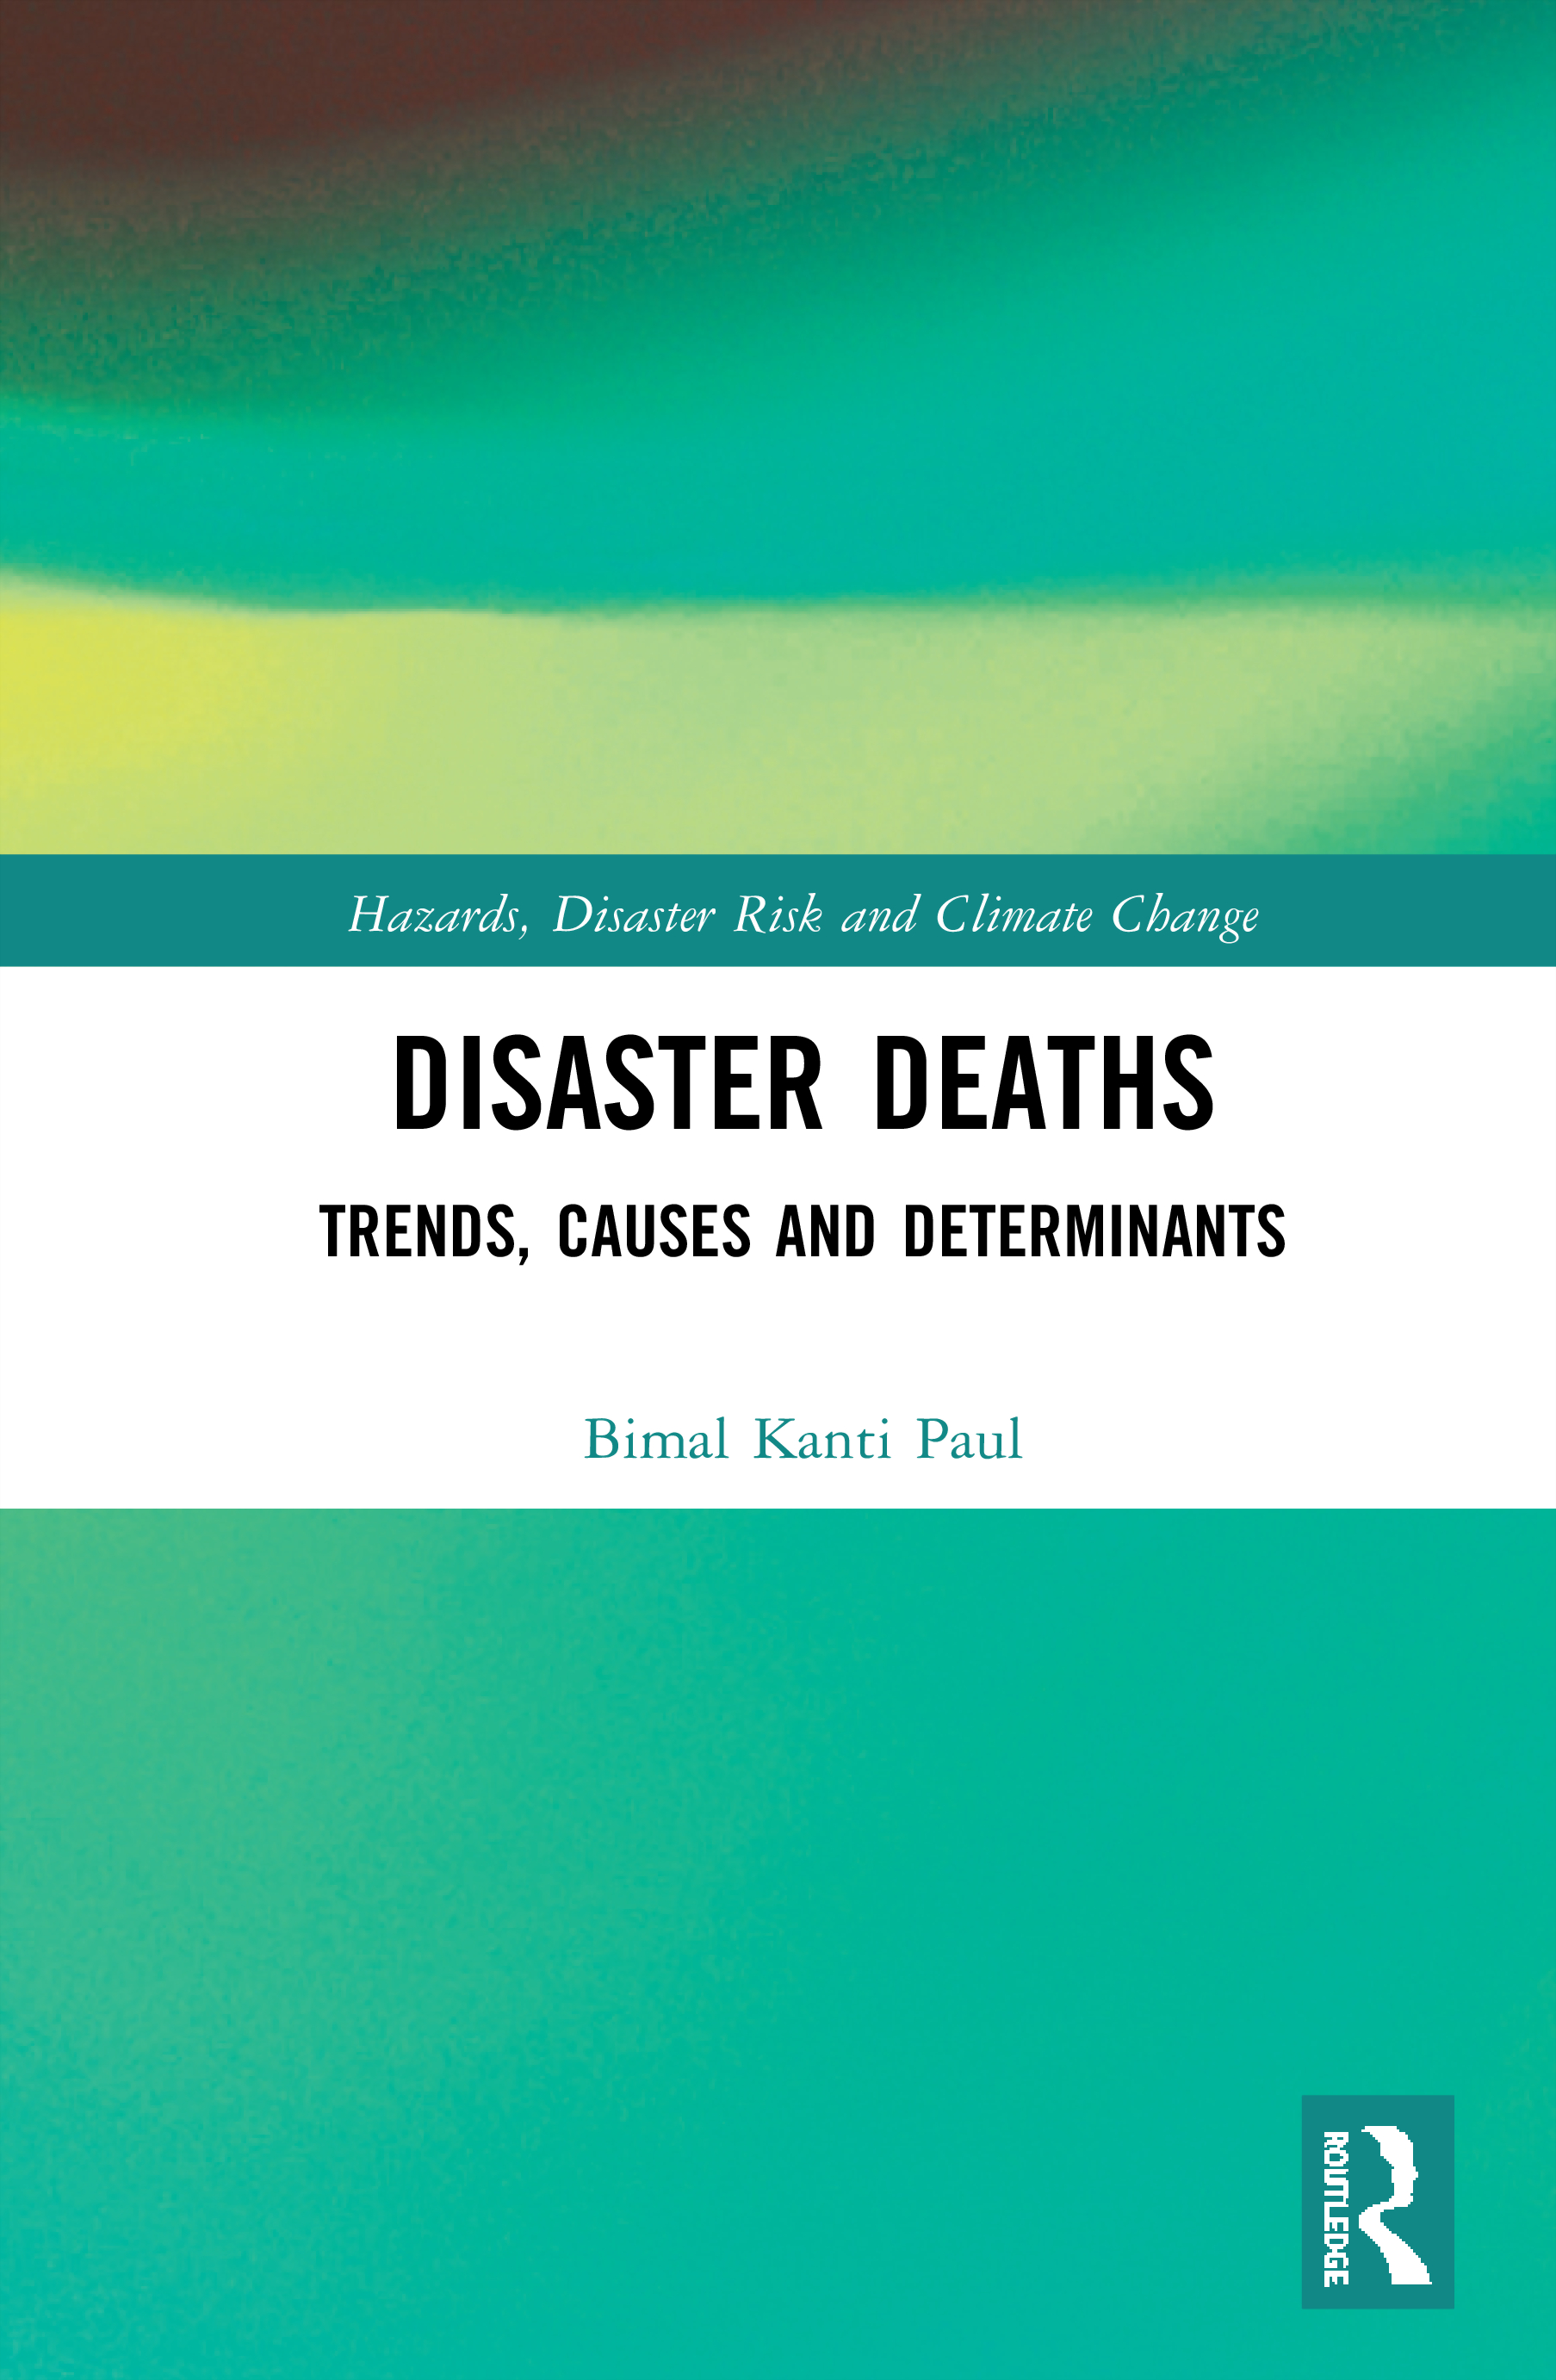 Circumstances and causes of disaster deaths